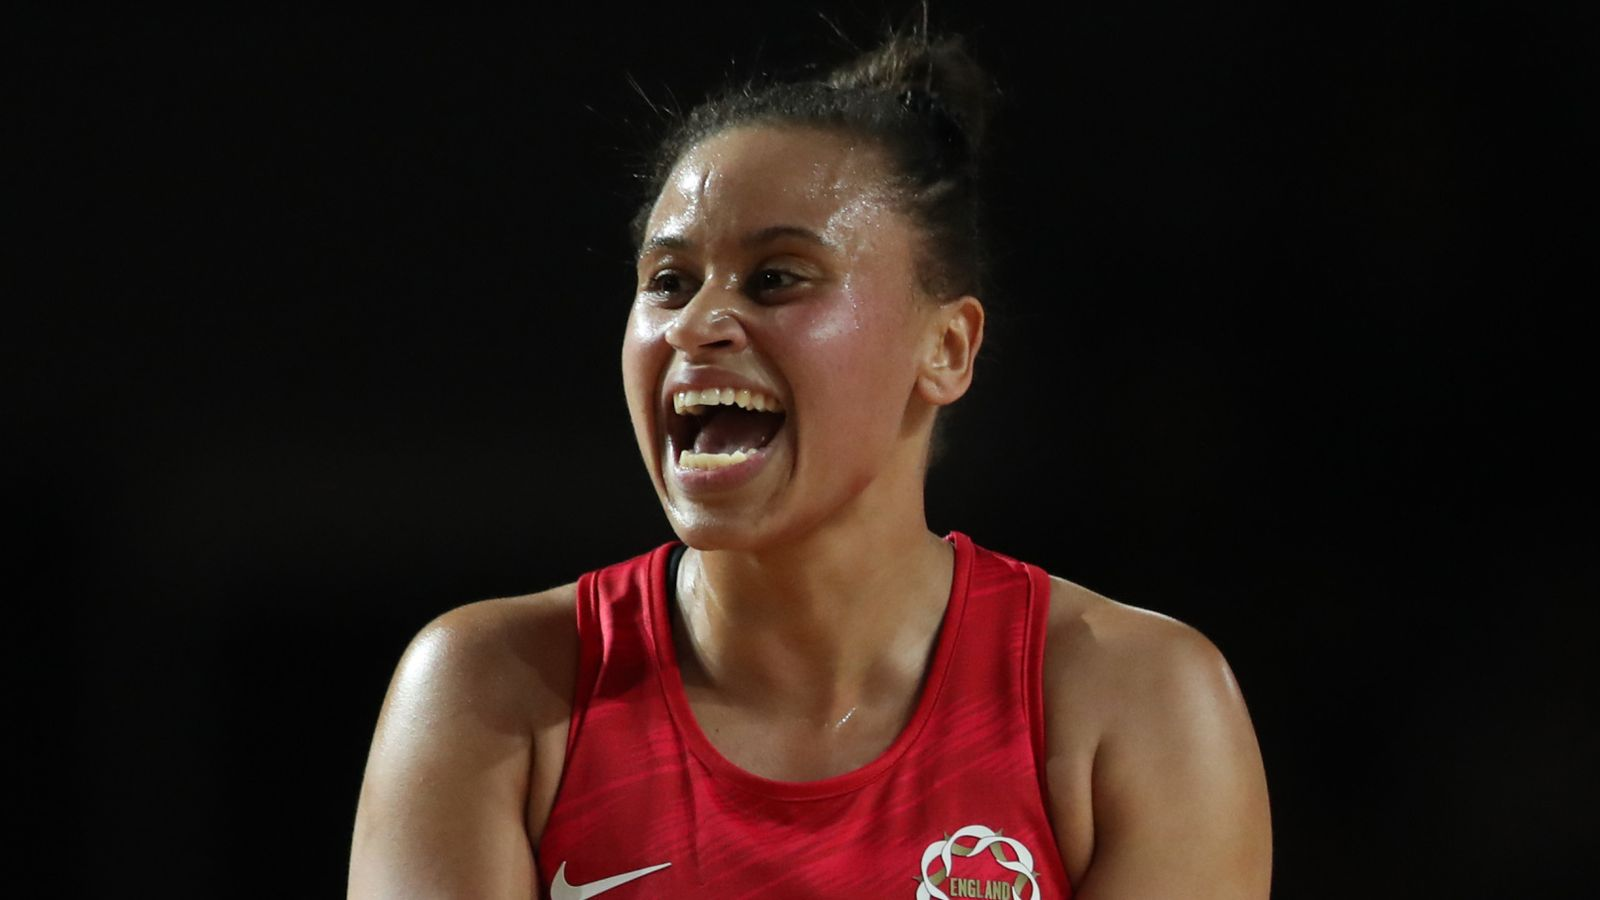 England's Vitality Roses to face NZ, live on Sky Sports